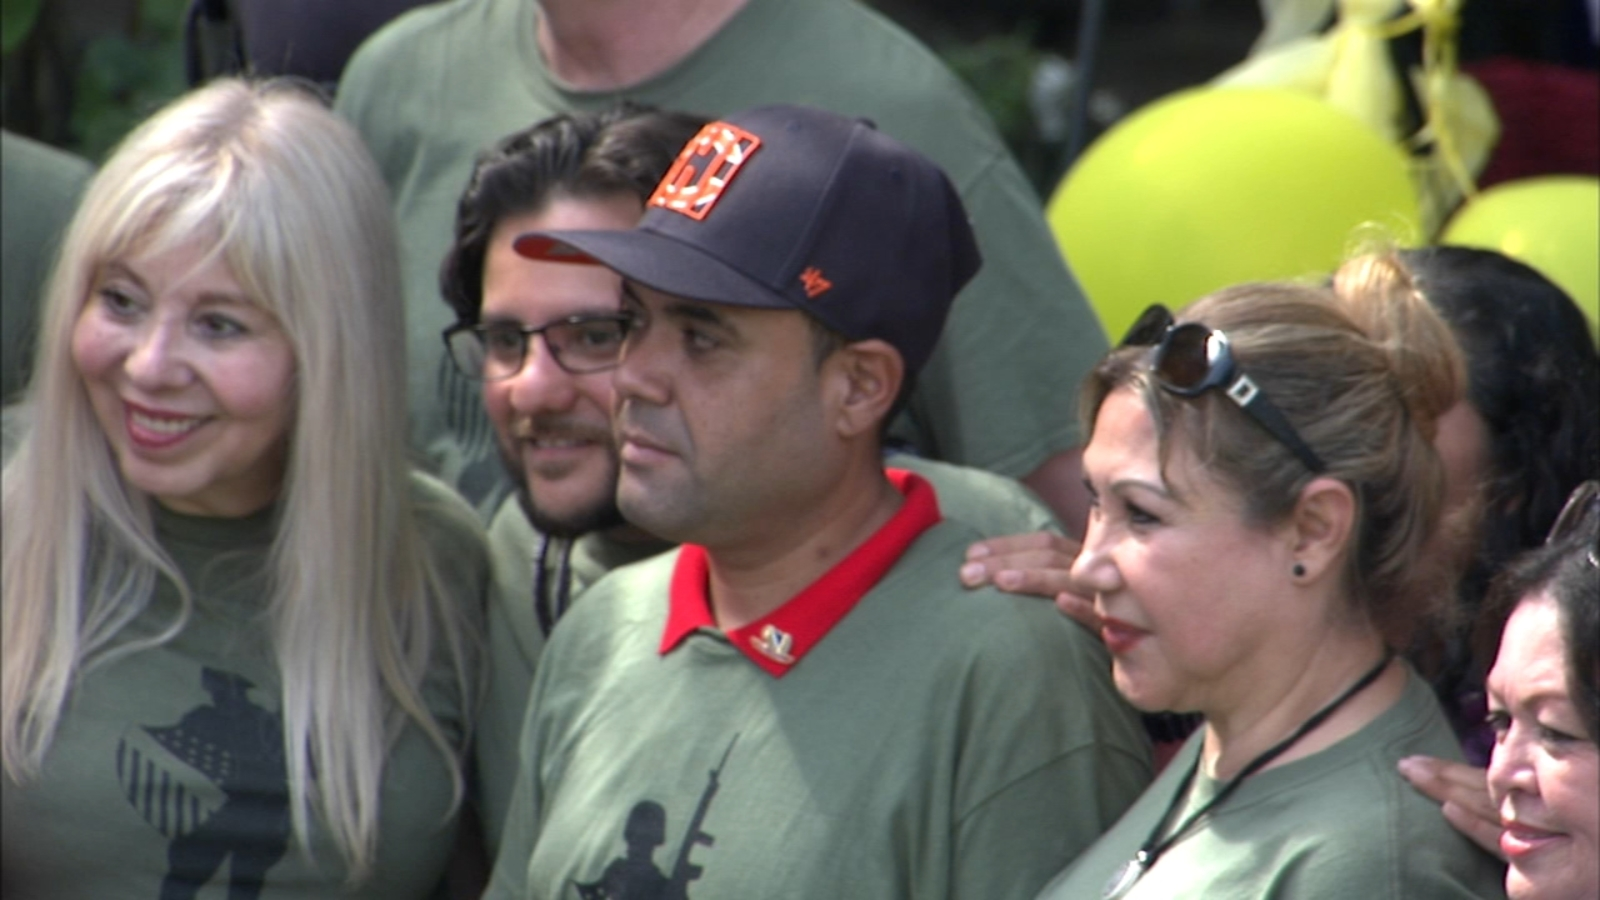 Illinois deported Army veteran back in Chicago as free man for 1st time in decade